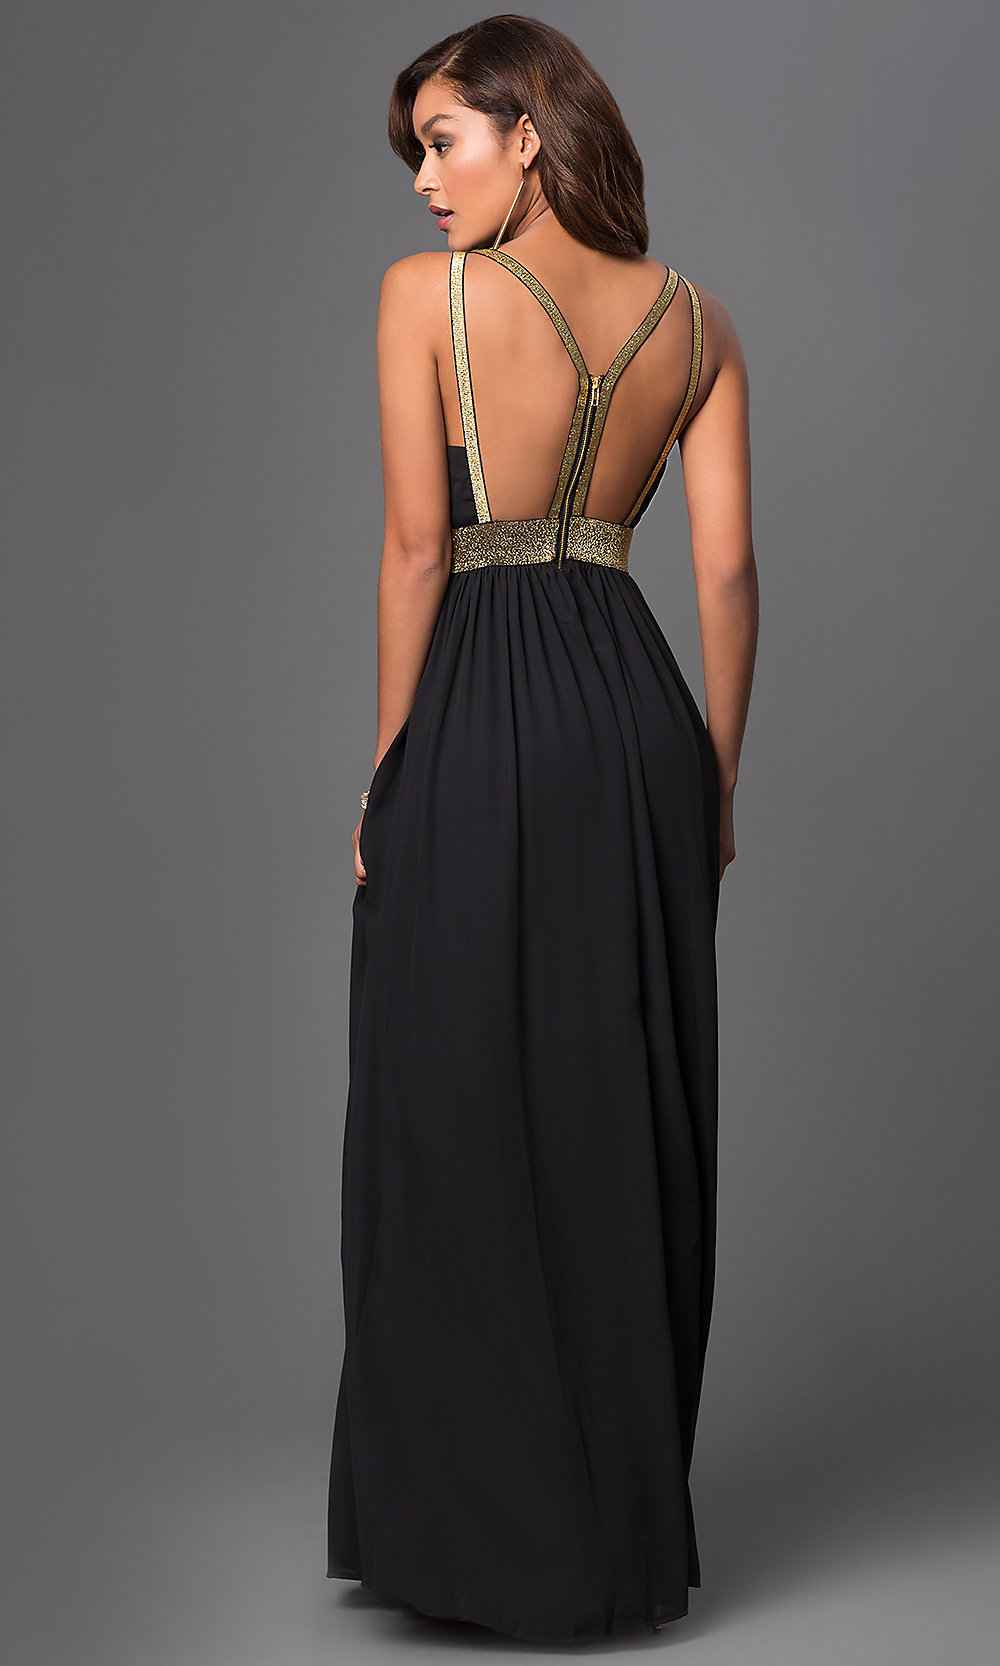 V back long dress pictures